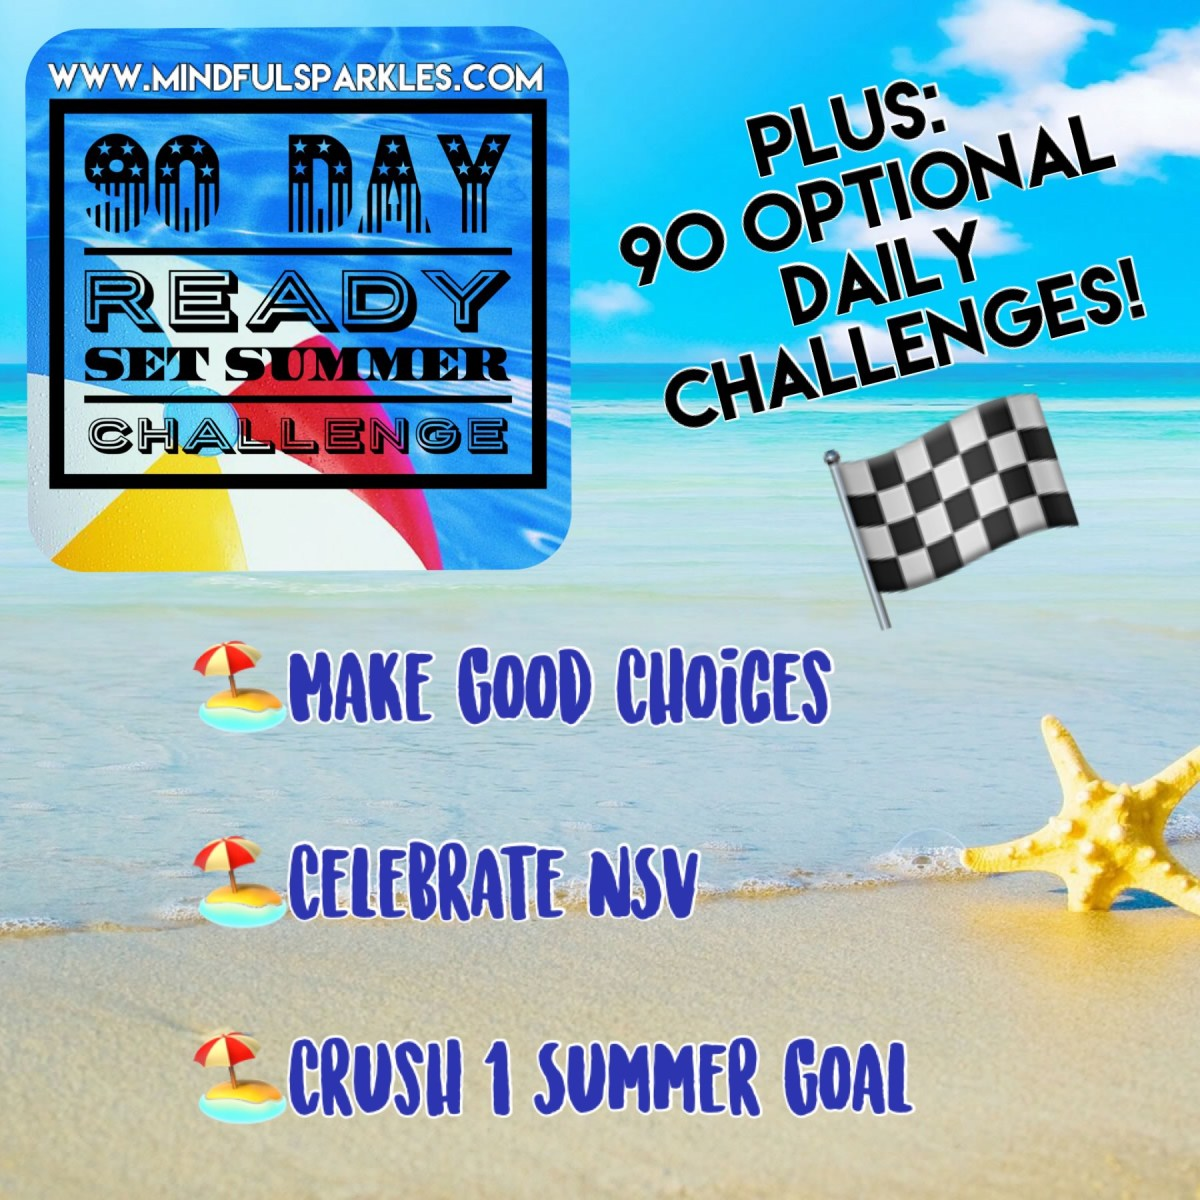 90 Day Ready Set Summer Challenge